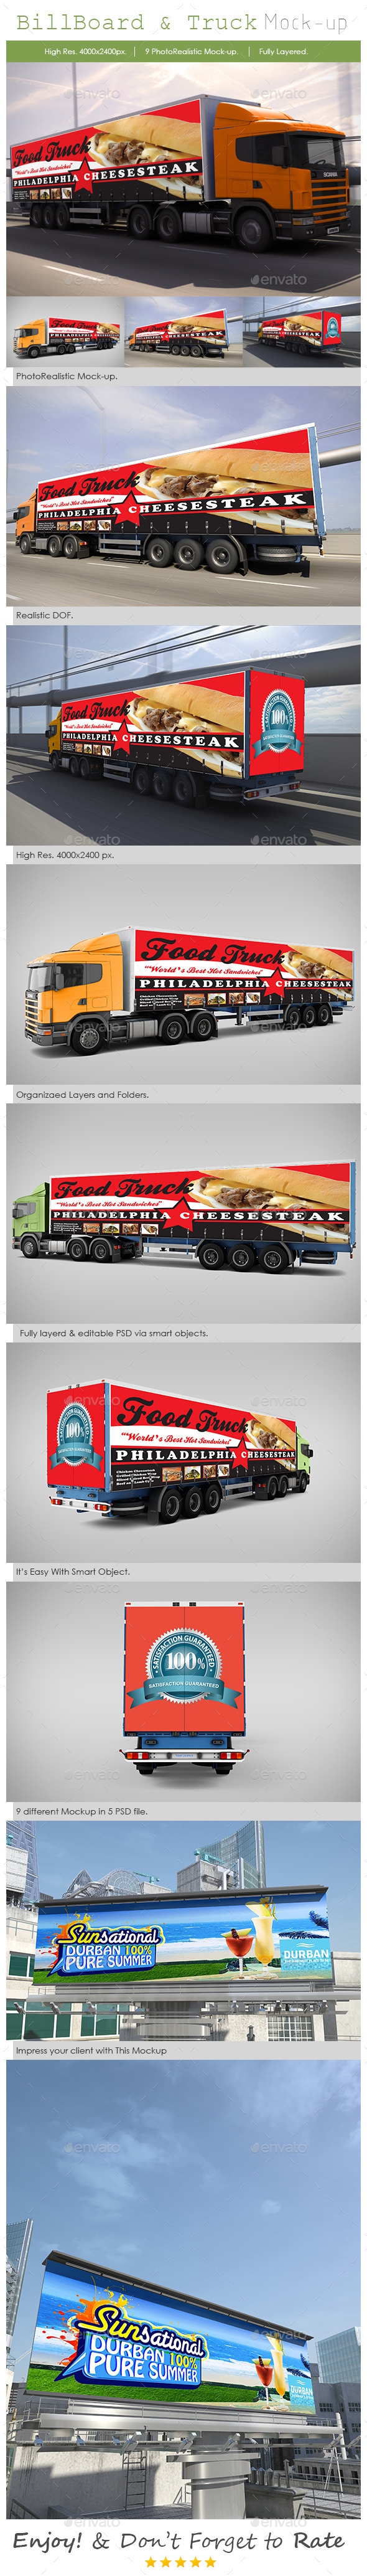 Billboard and Truck Mock-Up - Print Product Mock-Ups